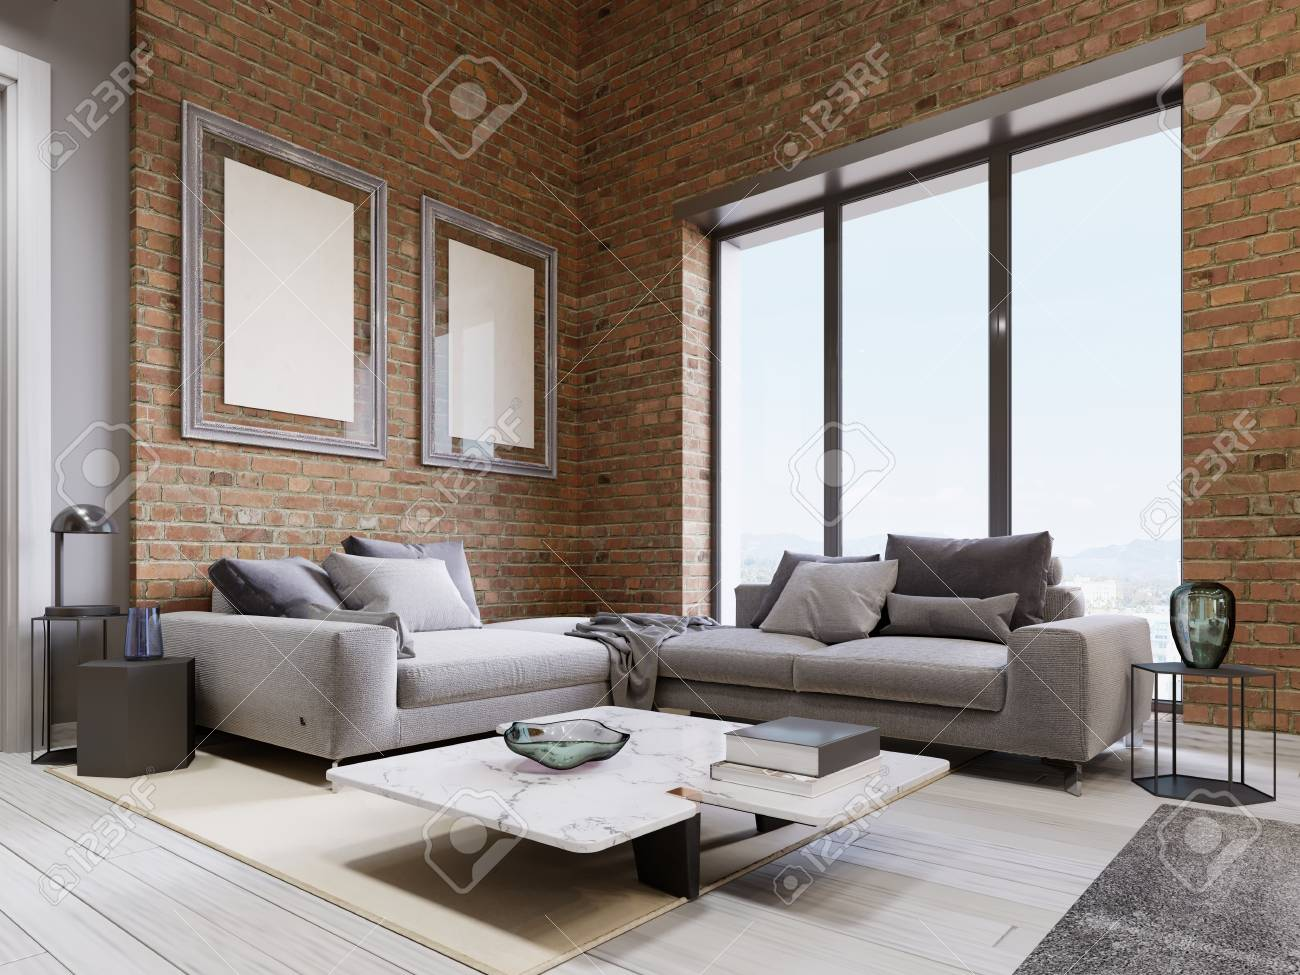 modern sofa with panoramic windows in loft living room. 3d rendering